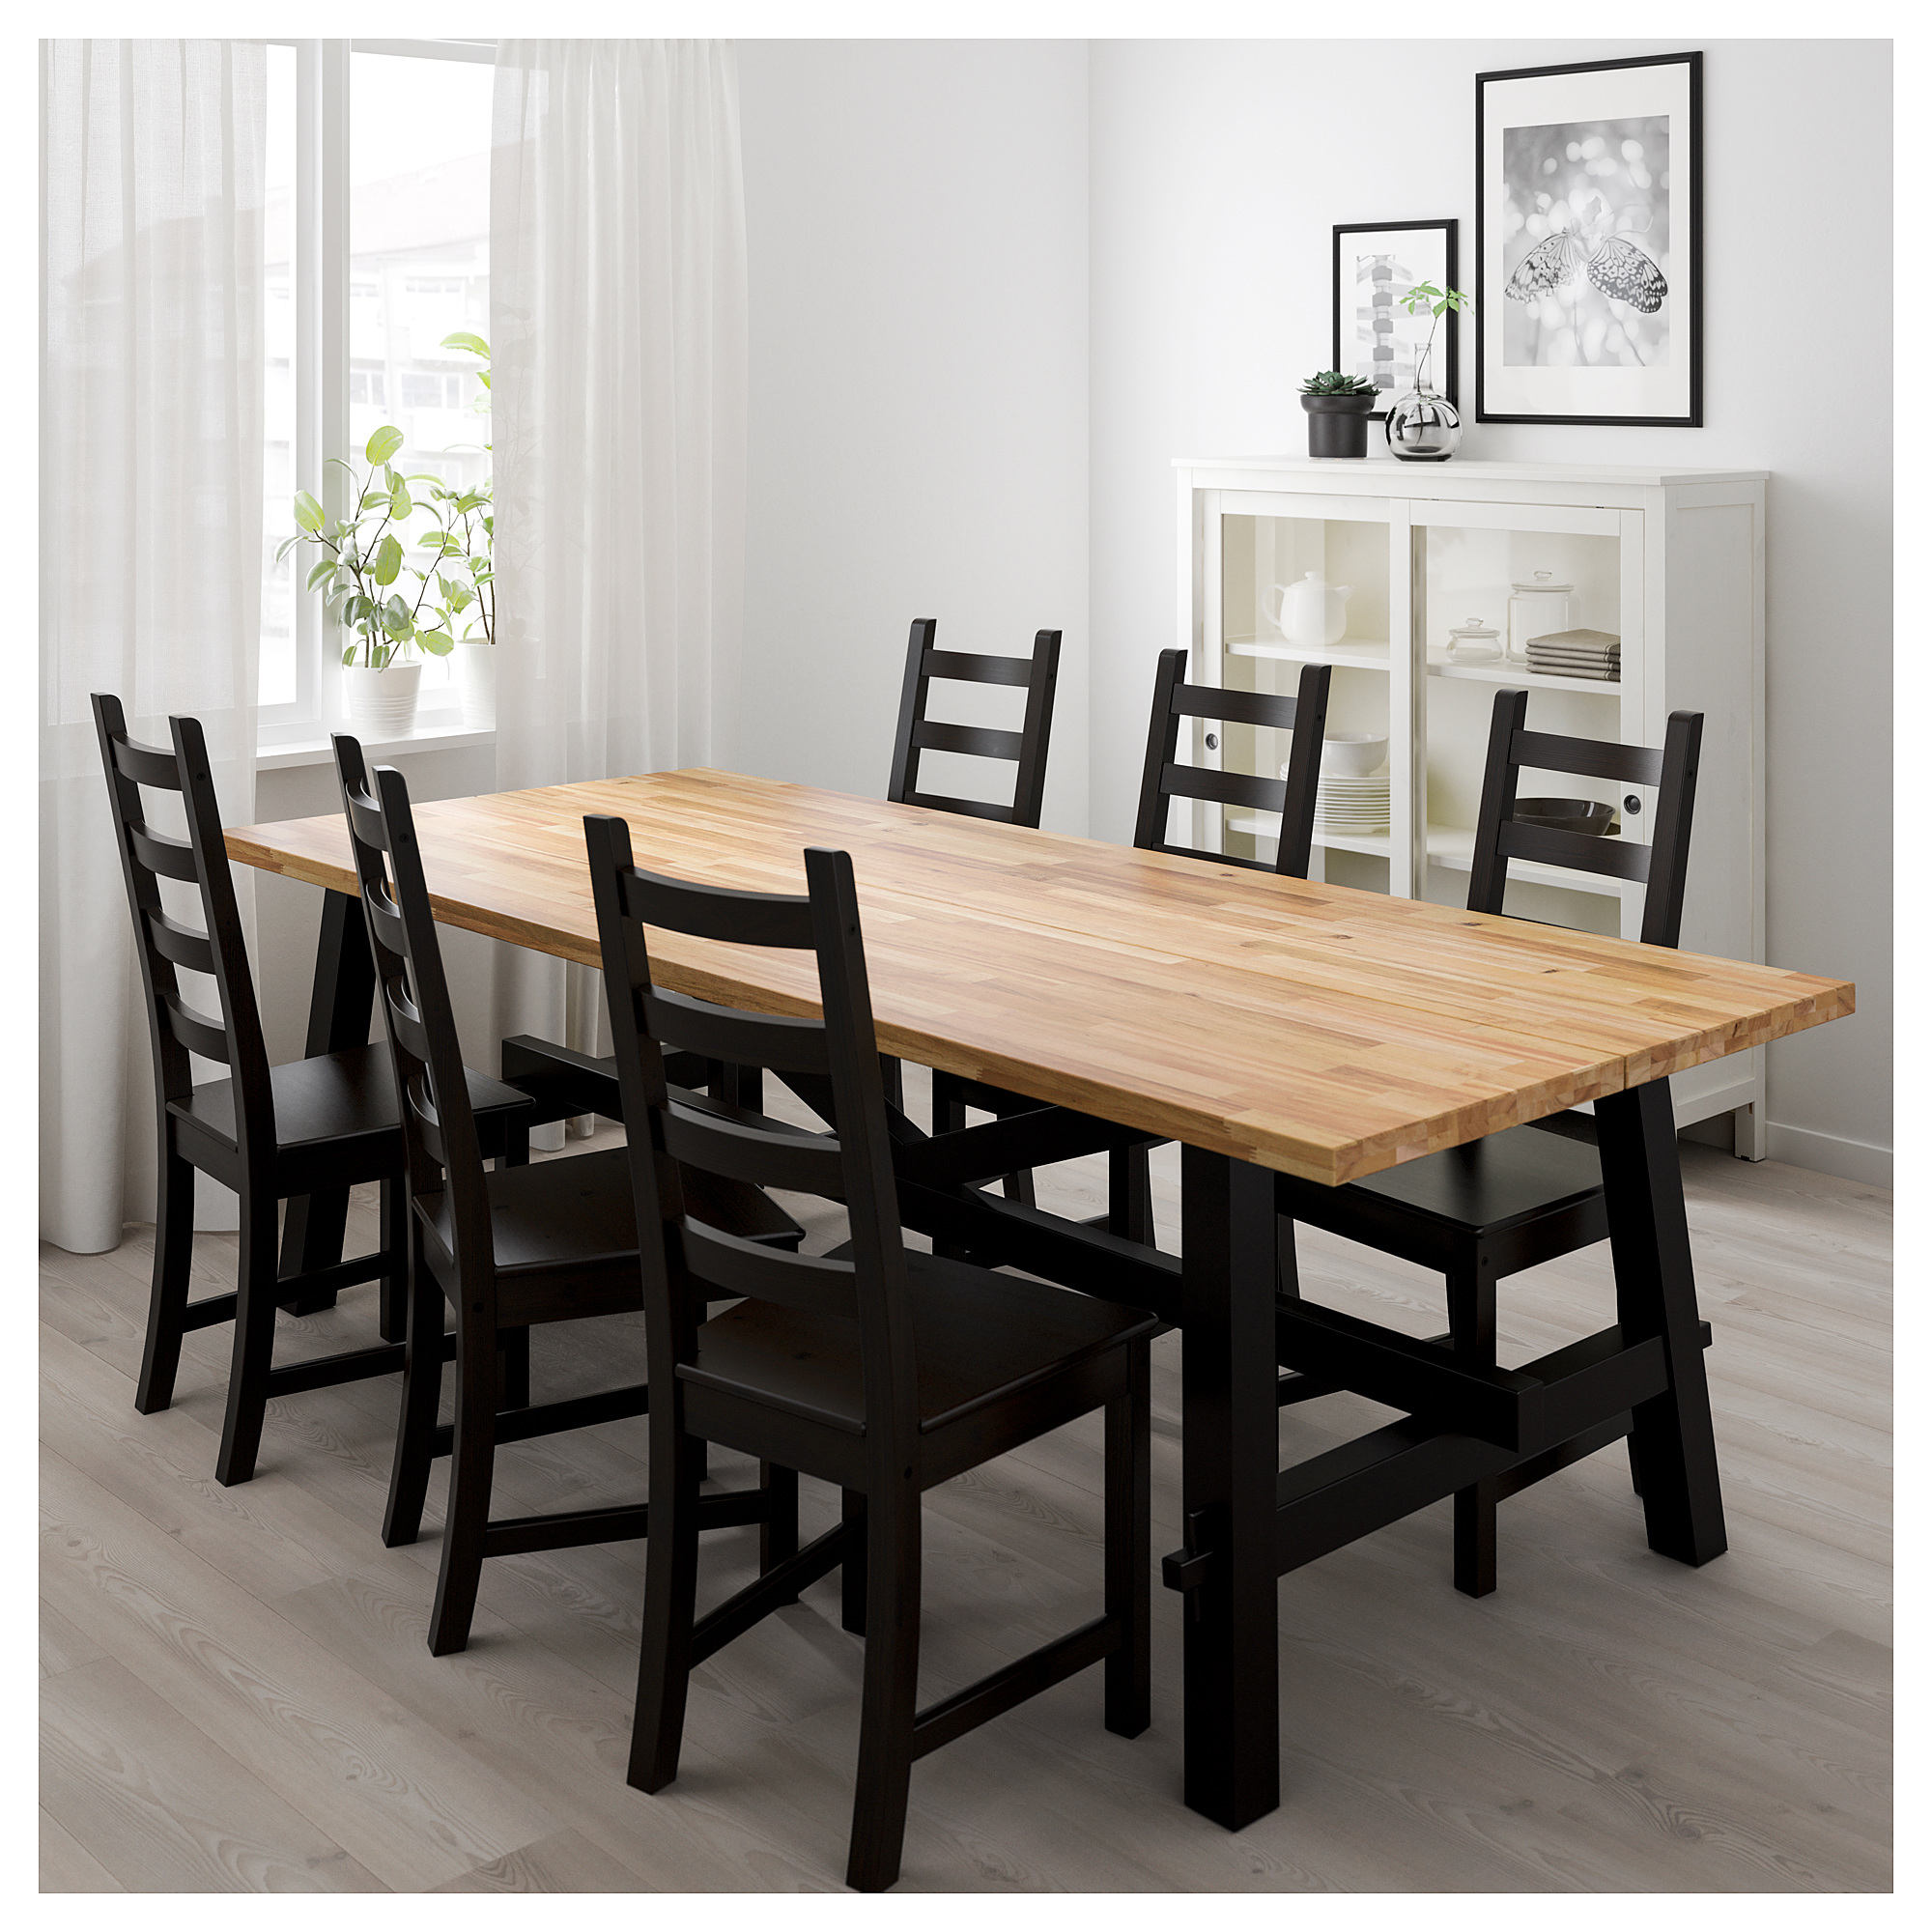 Kitchen Dining And More.Ikea Lithuania Shop For Furniture Lighting Home Accessories More